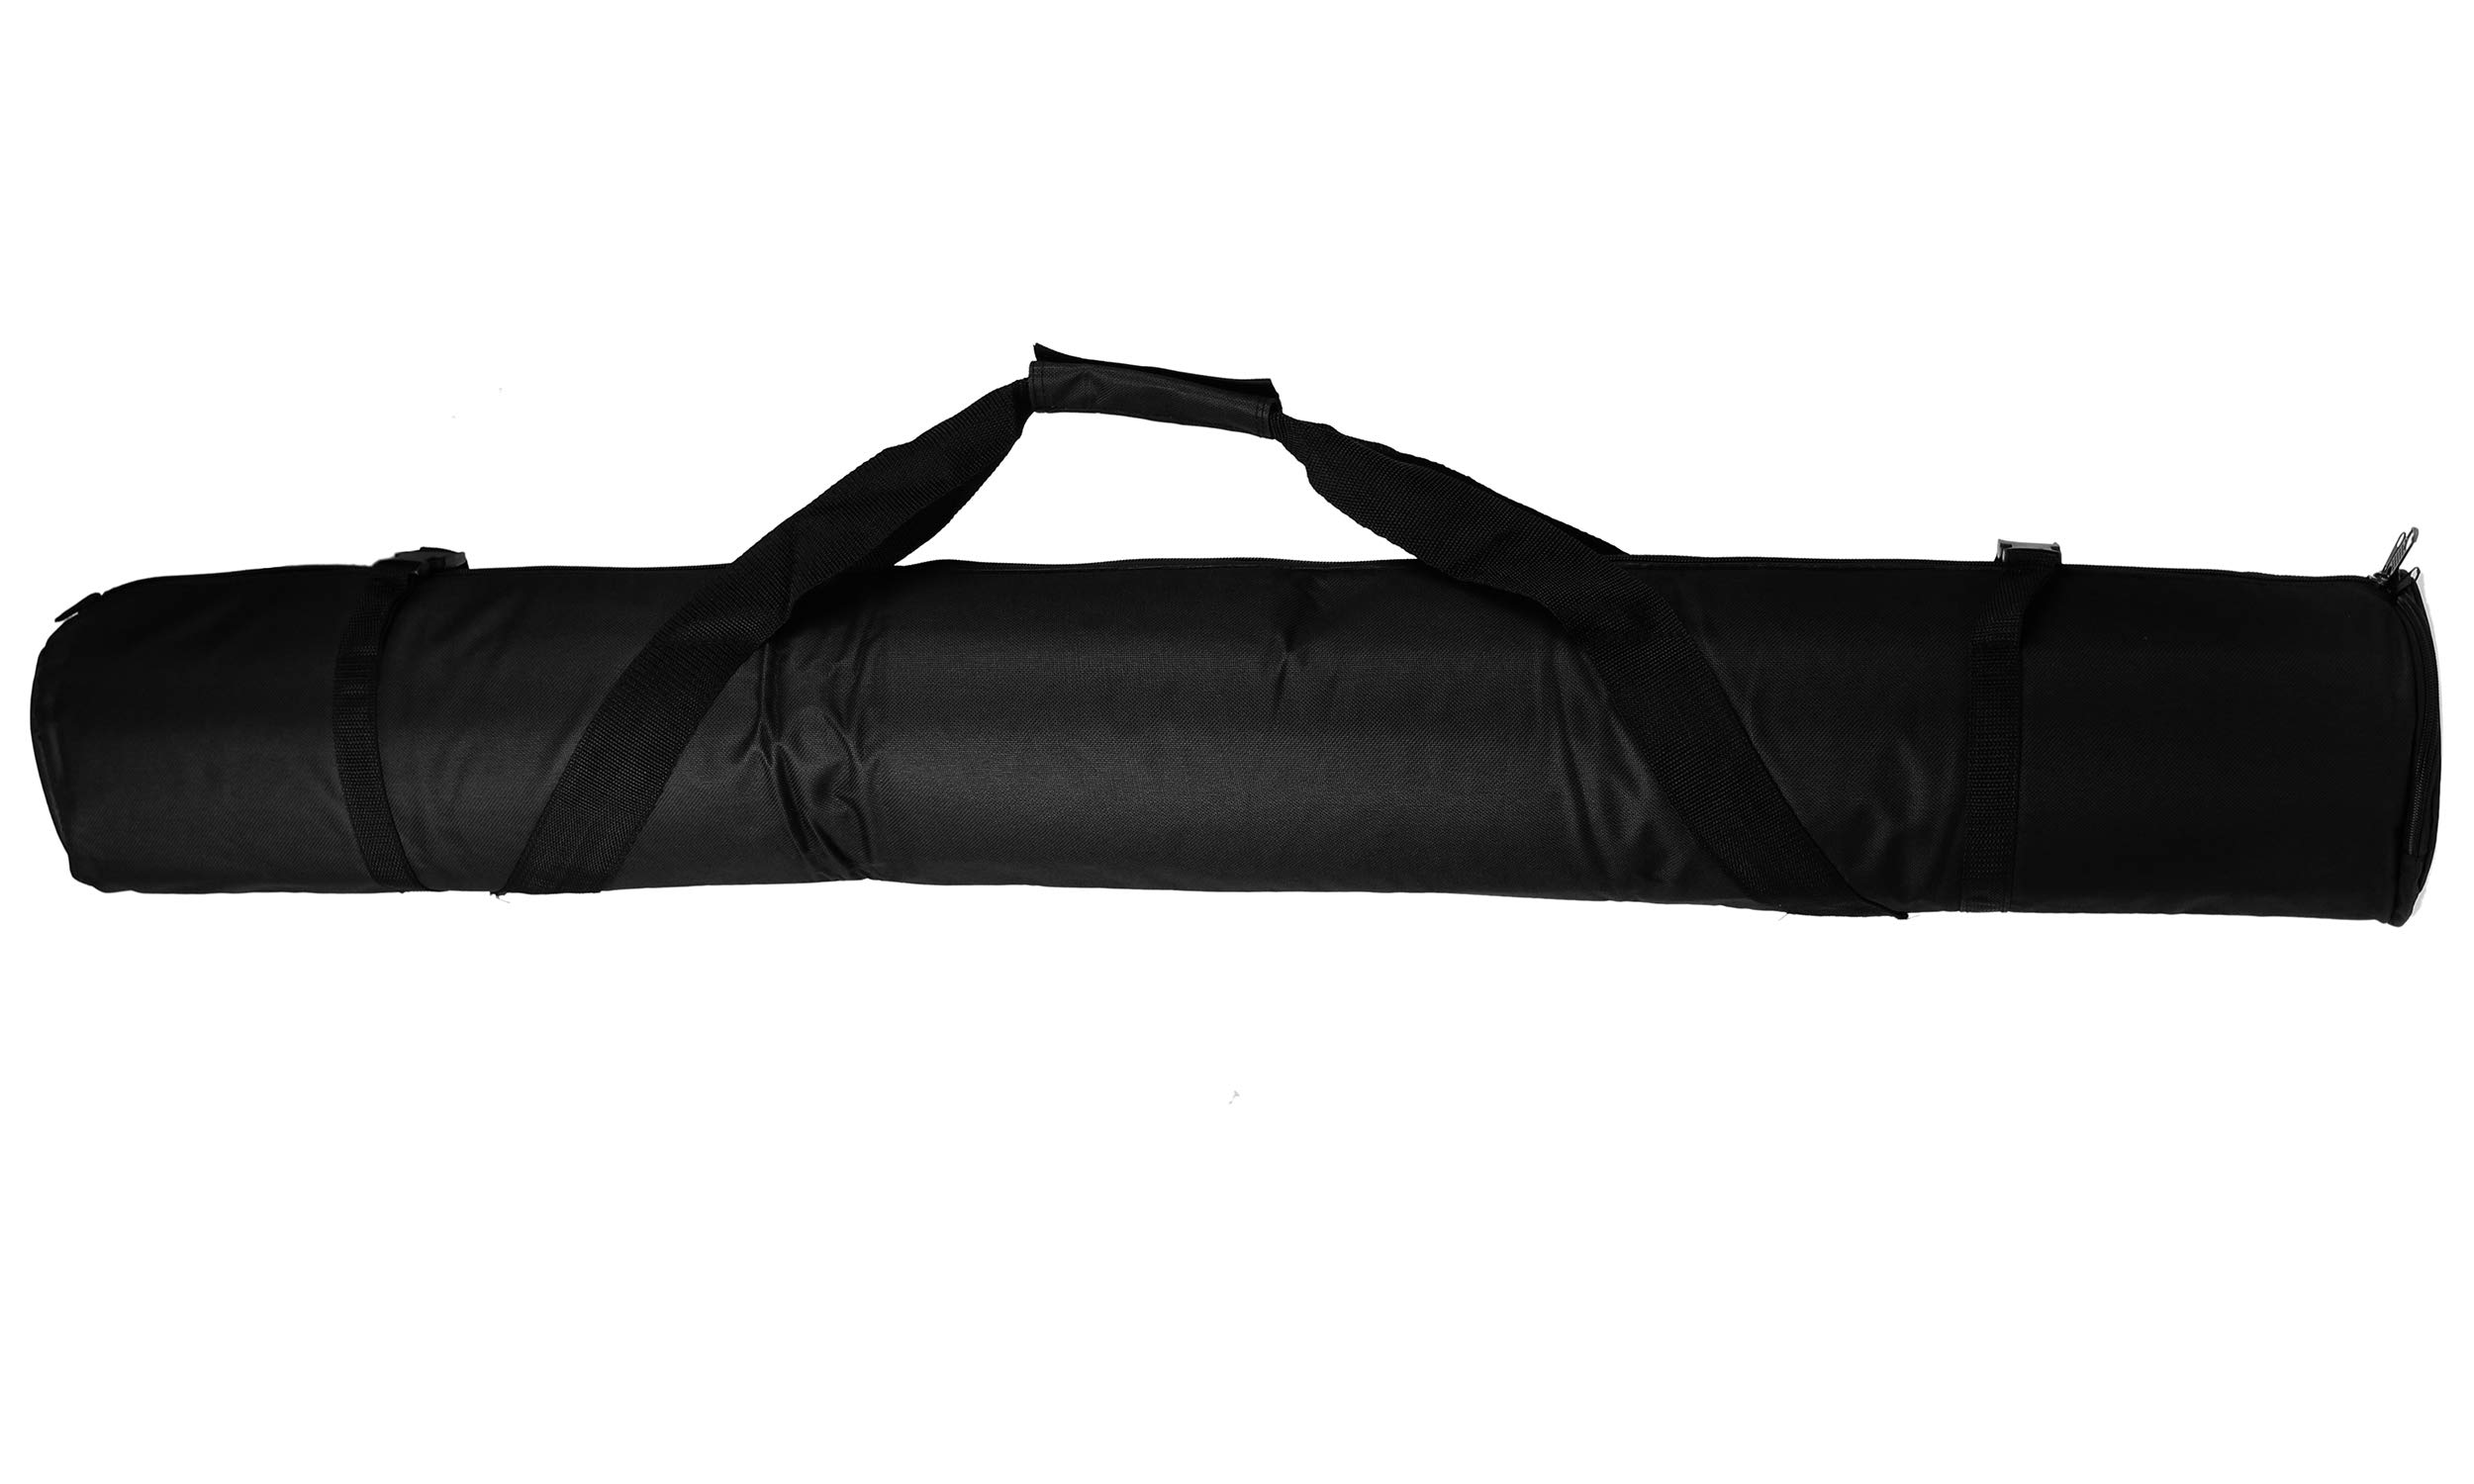 TUYUNG Portable Photography Equipment Zipper Bag Tripod Carrying Case for Light Stand, Umbrella and Tripod (49 x 6.2 Inch)